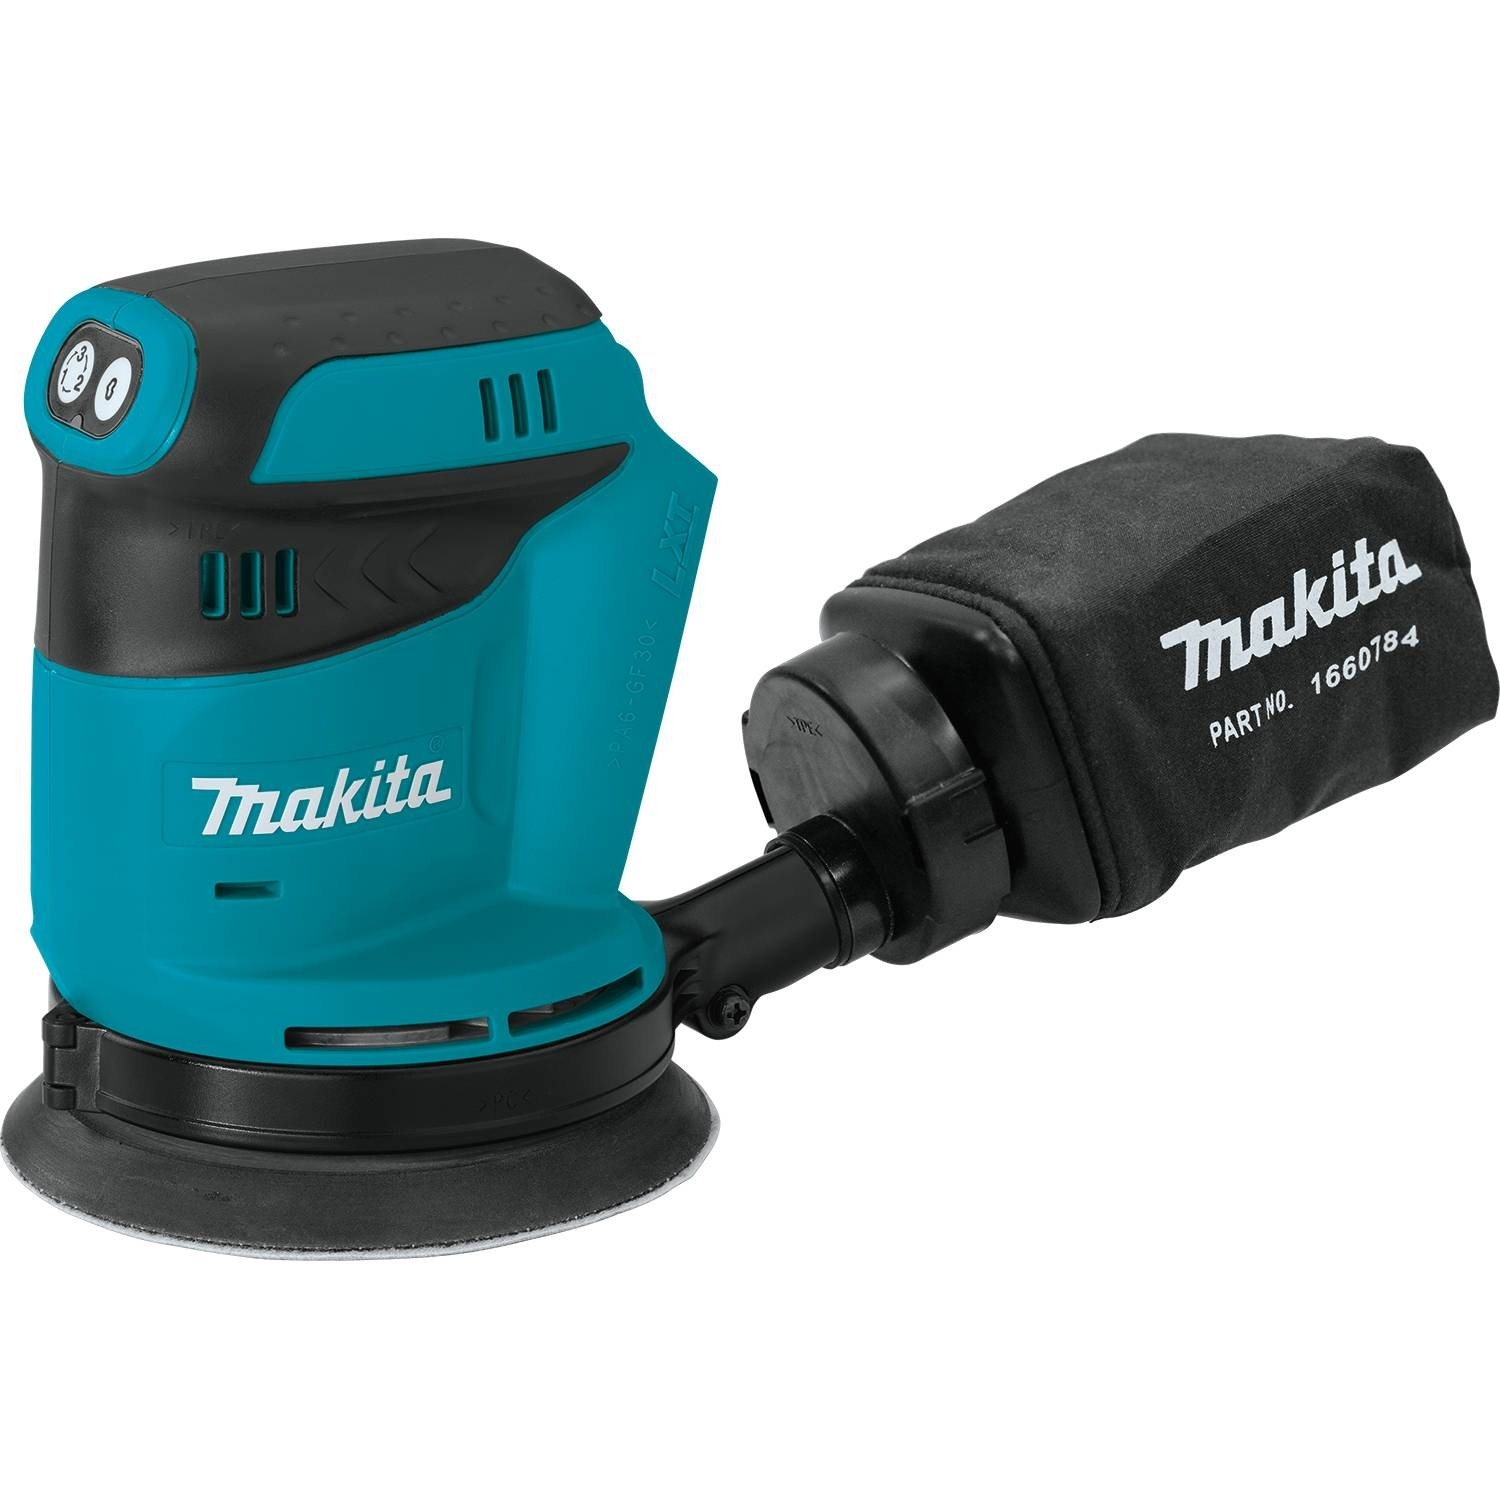 Makita XOB01Z 18V LXT Lithium-Ion Cordless 5'''' Random Orbit Sander, Tool Only